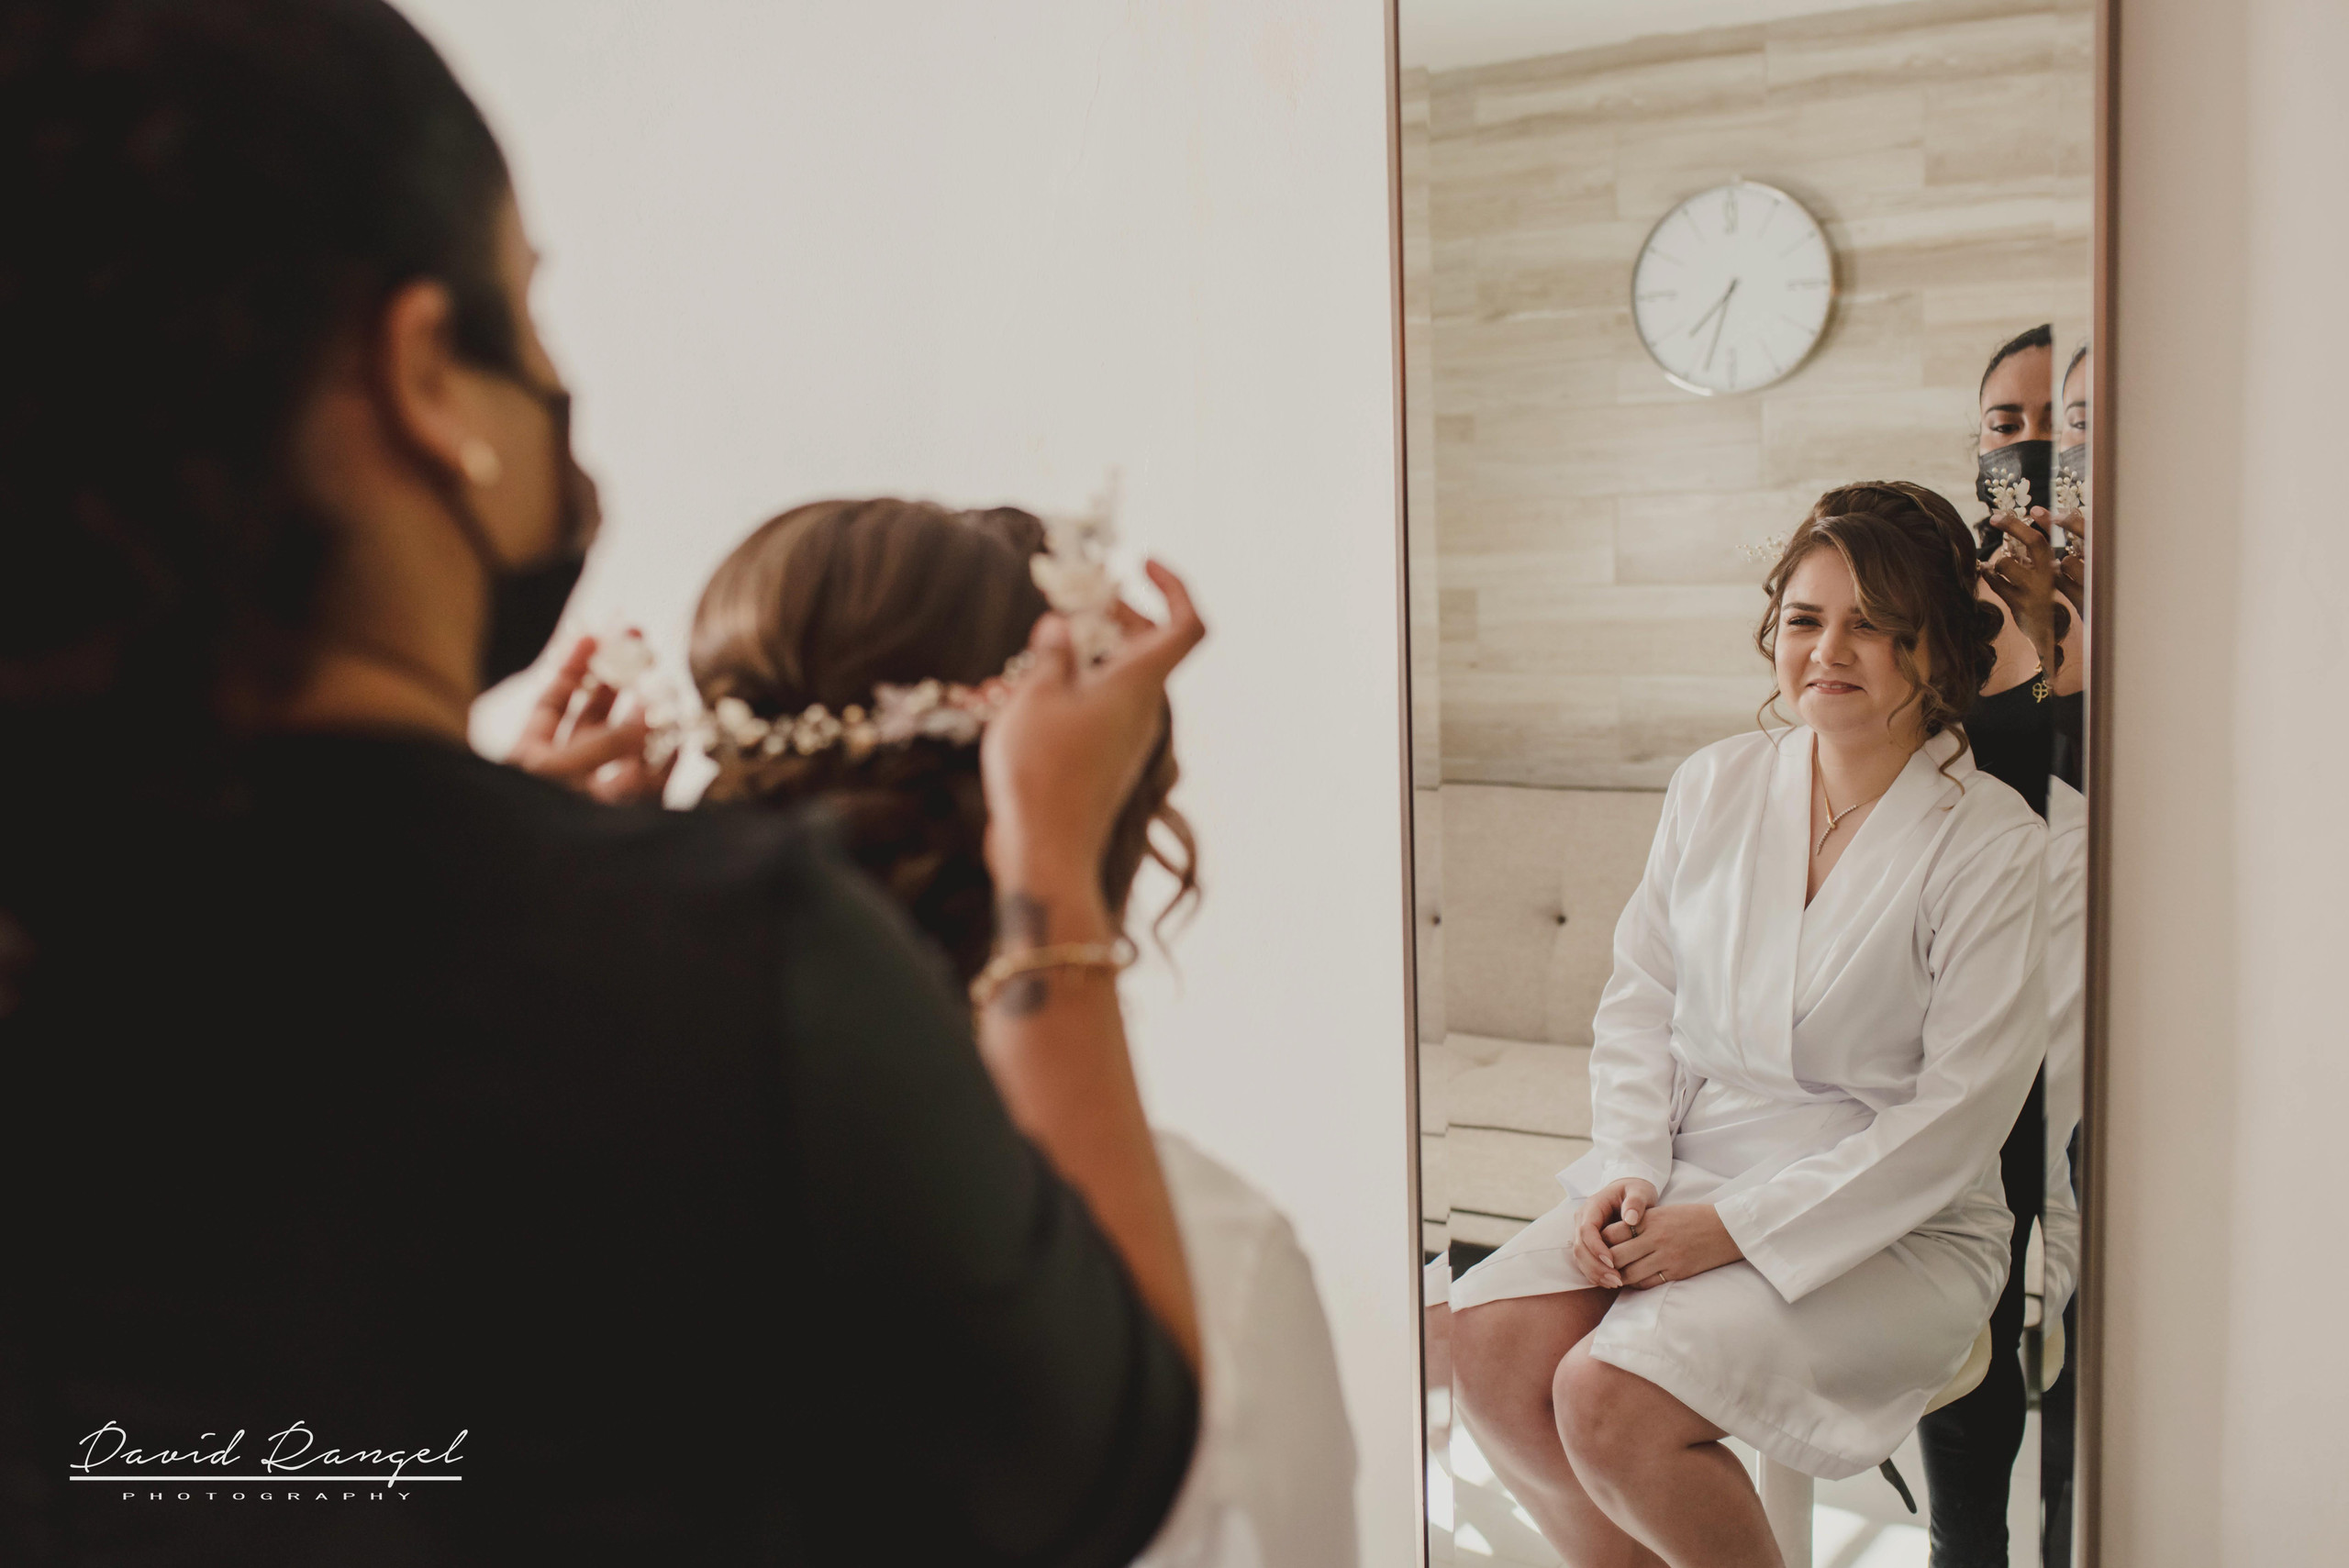 bride+getting+ready+shadow+earring++bathrobe+natural+ligh+photo+destination+wedding+isla+blanca+smile+mirror+crown